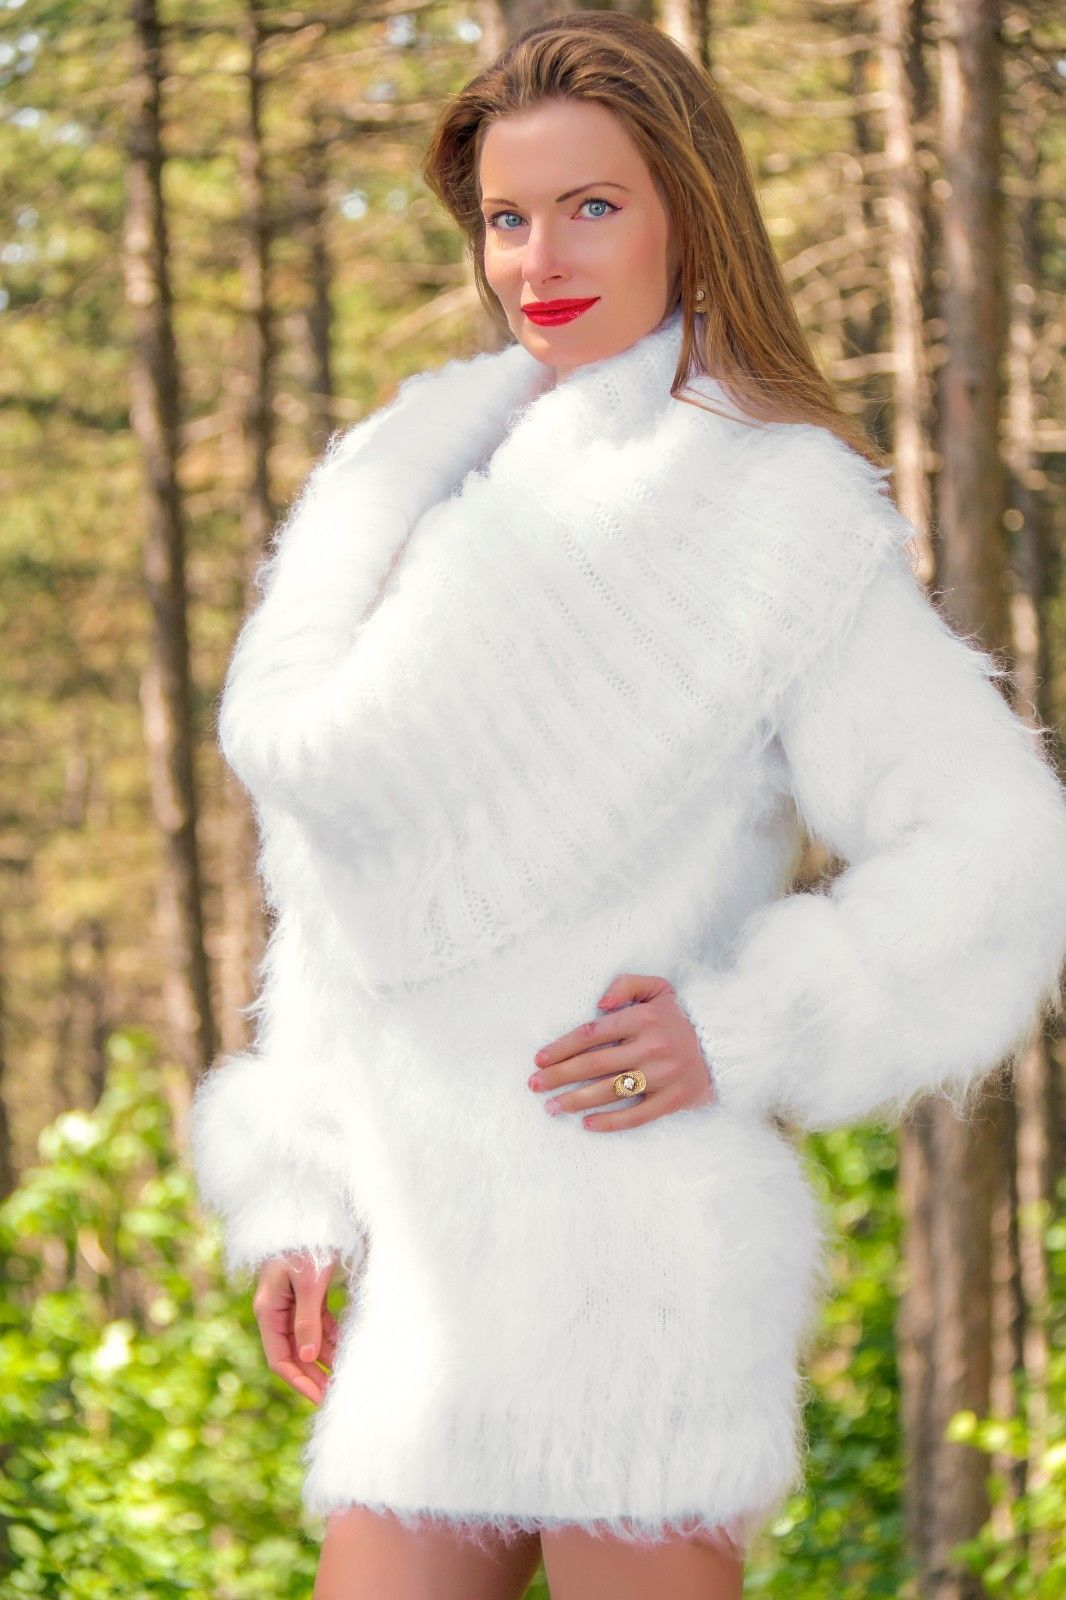 b513936baefe4 New white hand knitted mohair sweater dress fuzzy cowlneck tunic SUPERTANYA  SALE